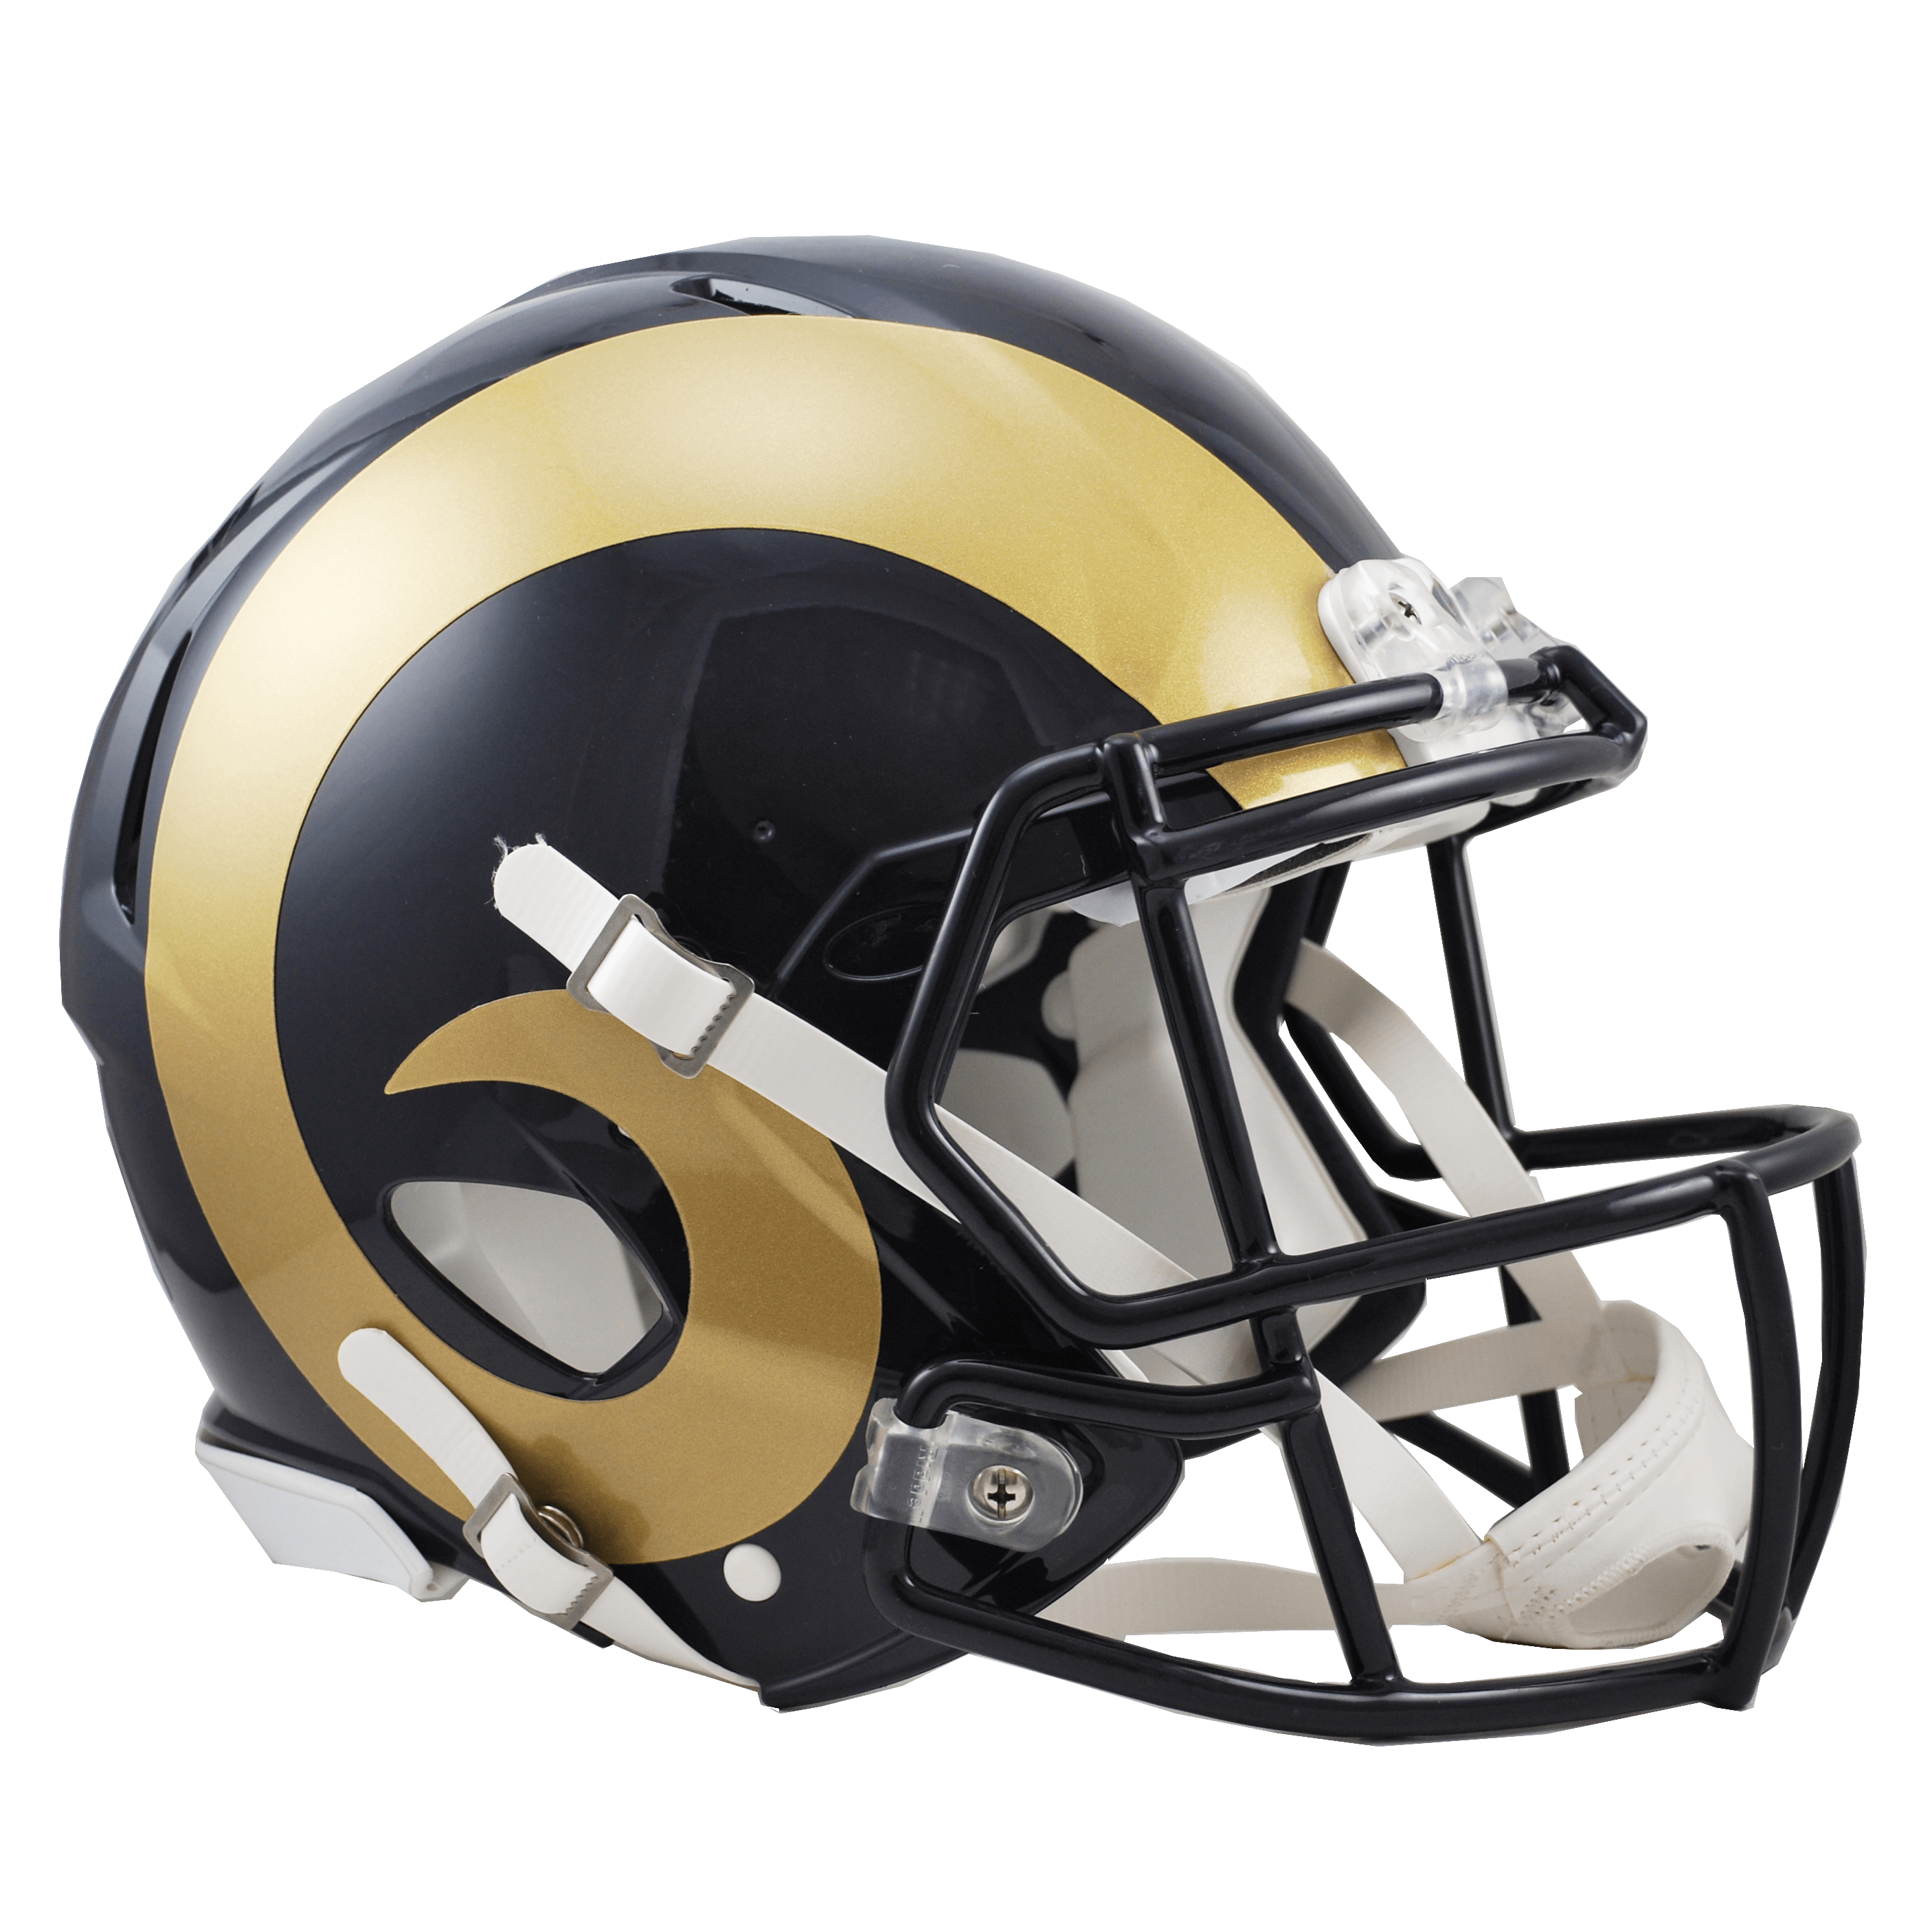 Rams football logo clipart clip art freeuse St Louis Rams Helmet transparent PNG - StickPNG clip art freeuse